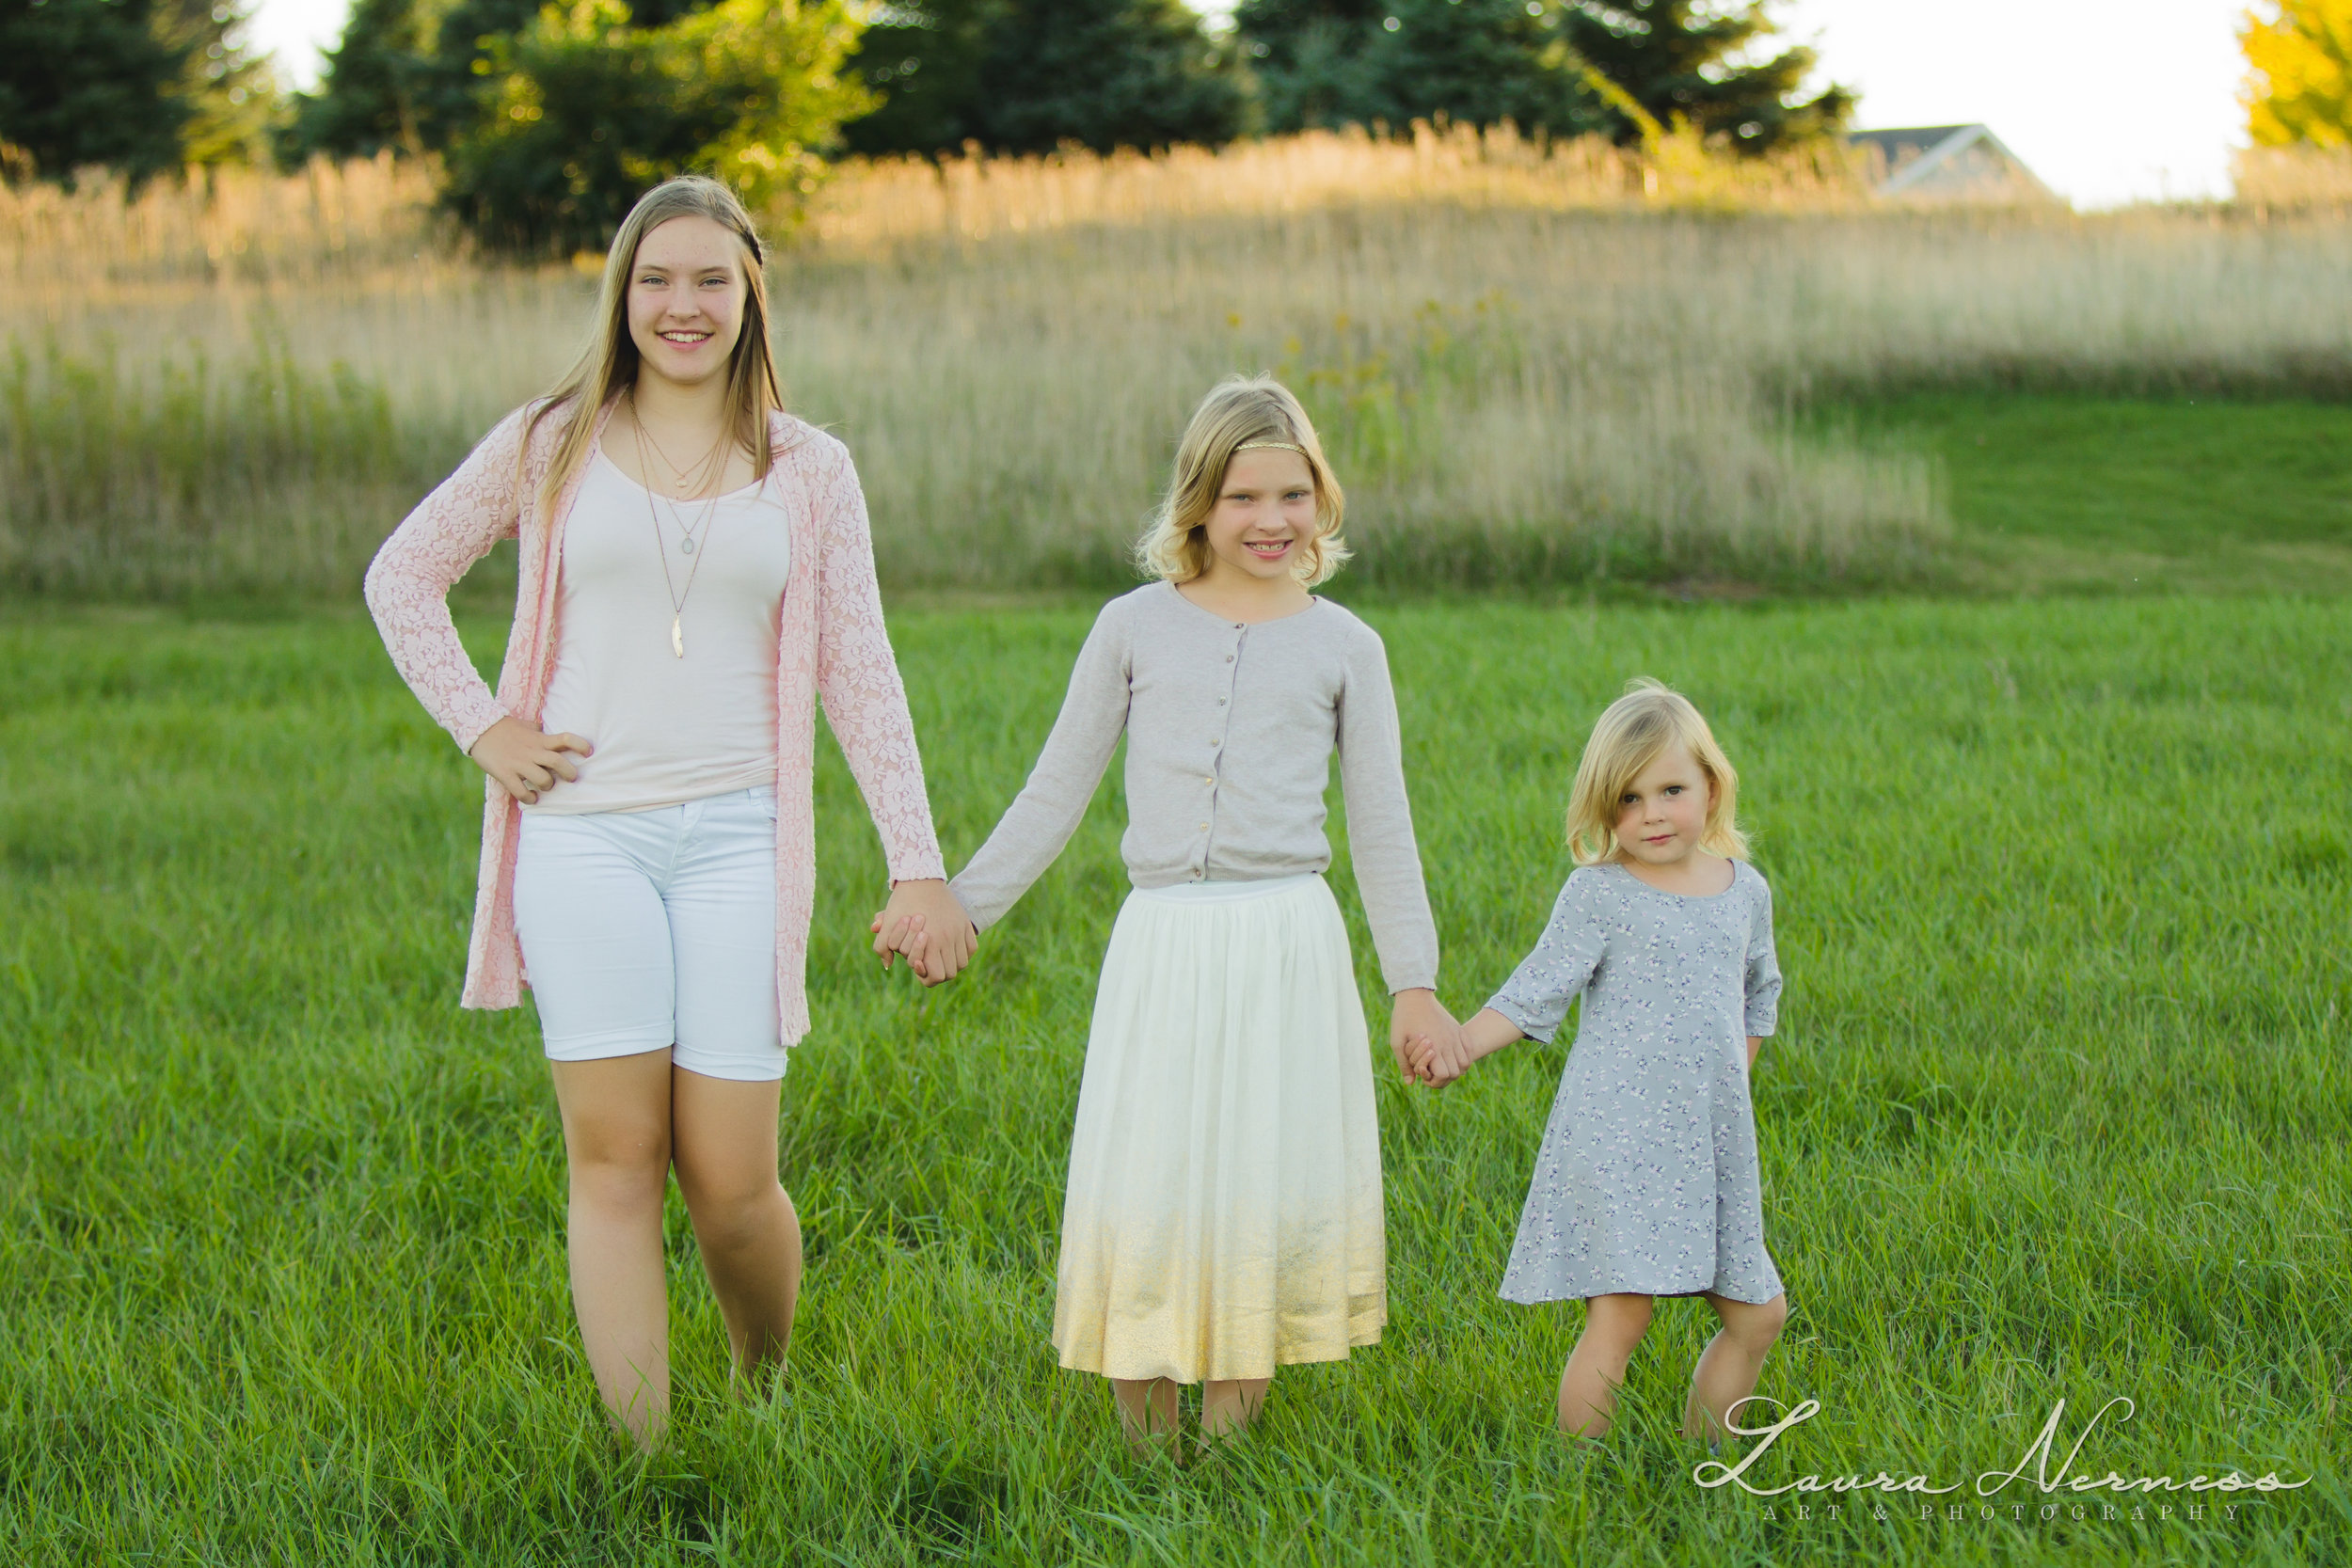 Wildeboer Family-12.jpg